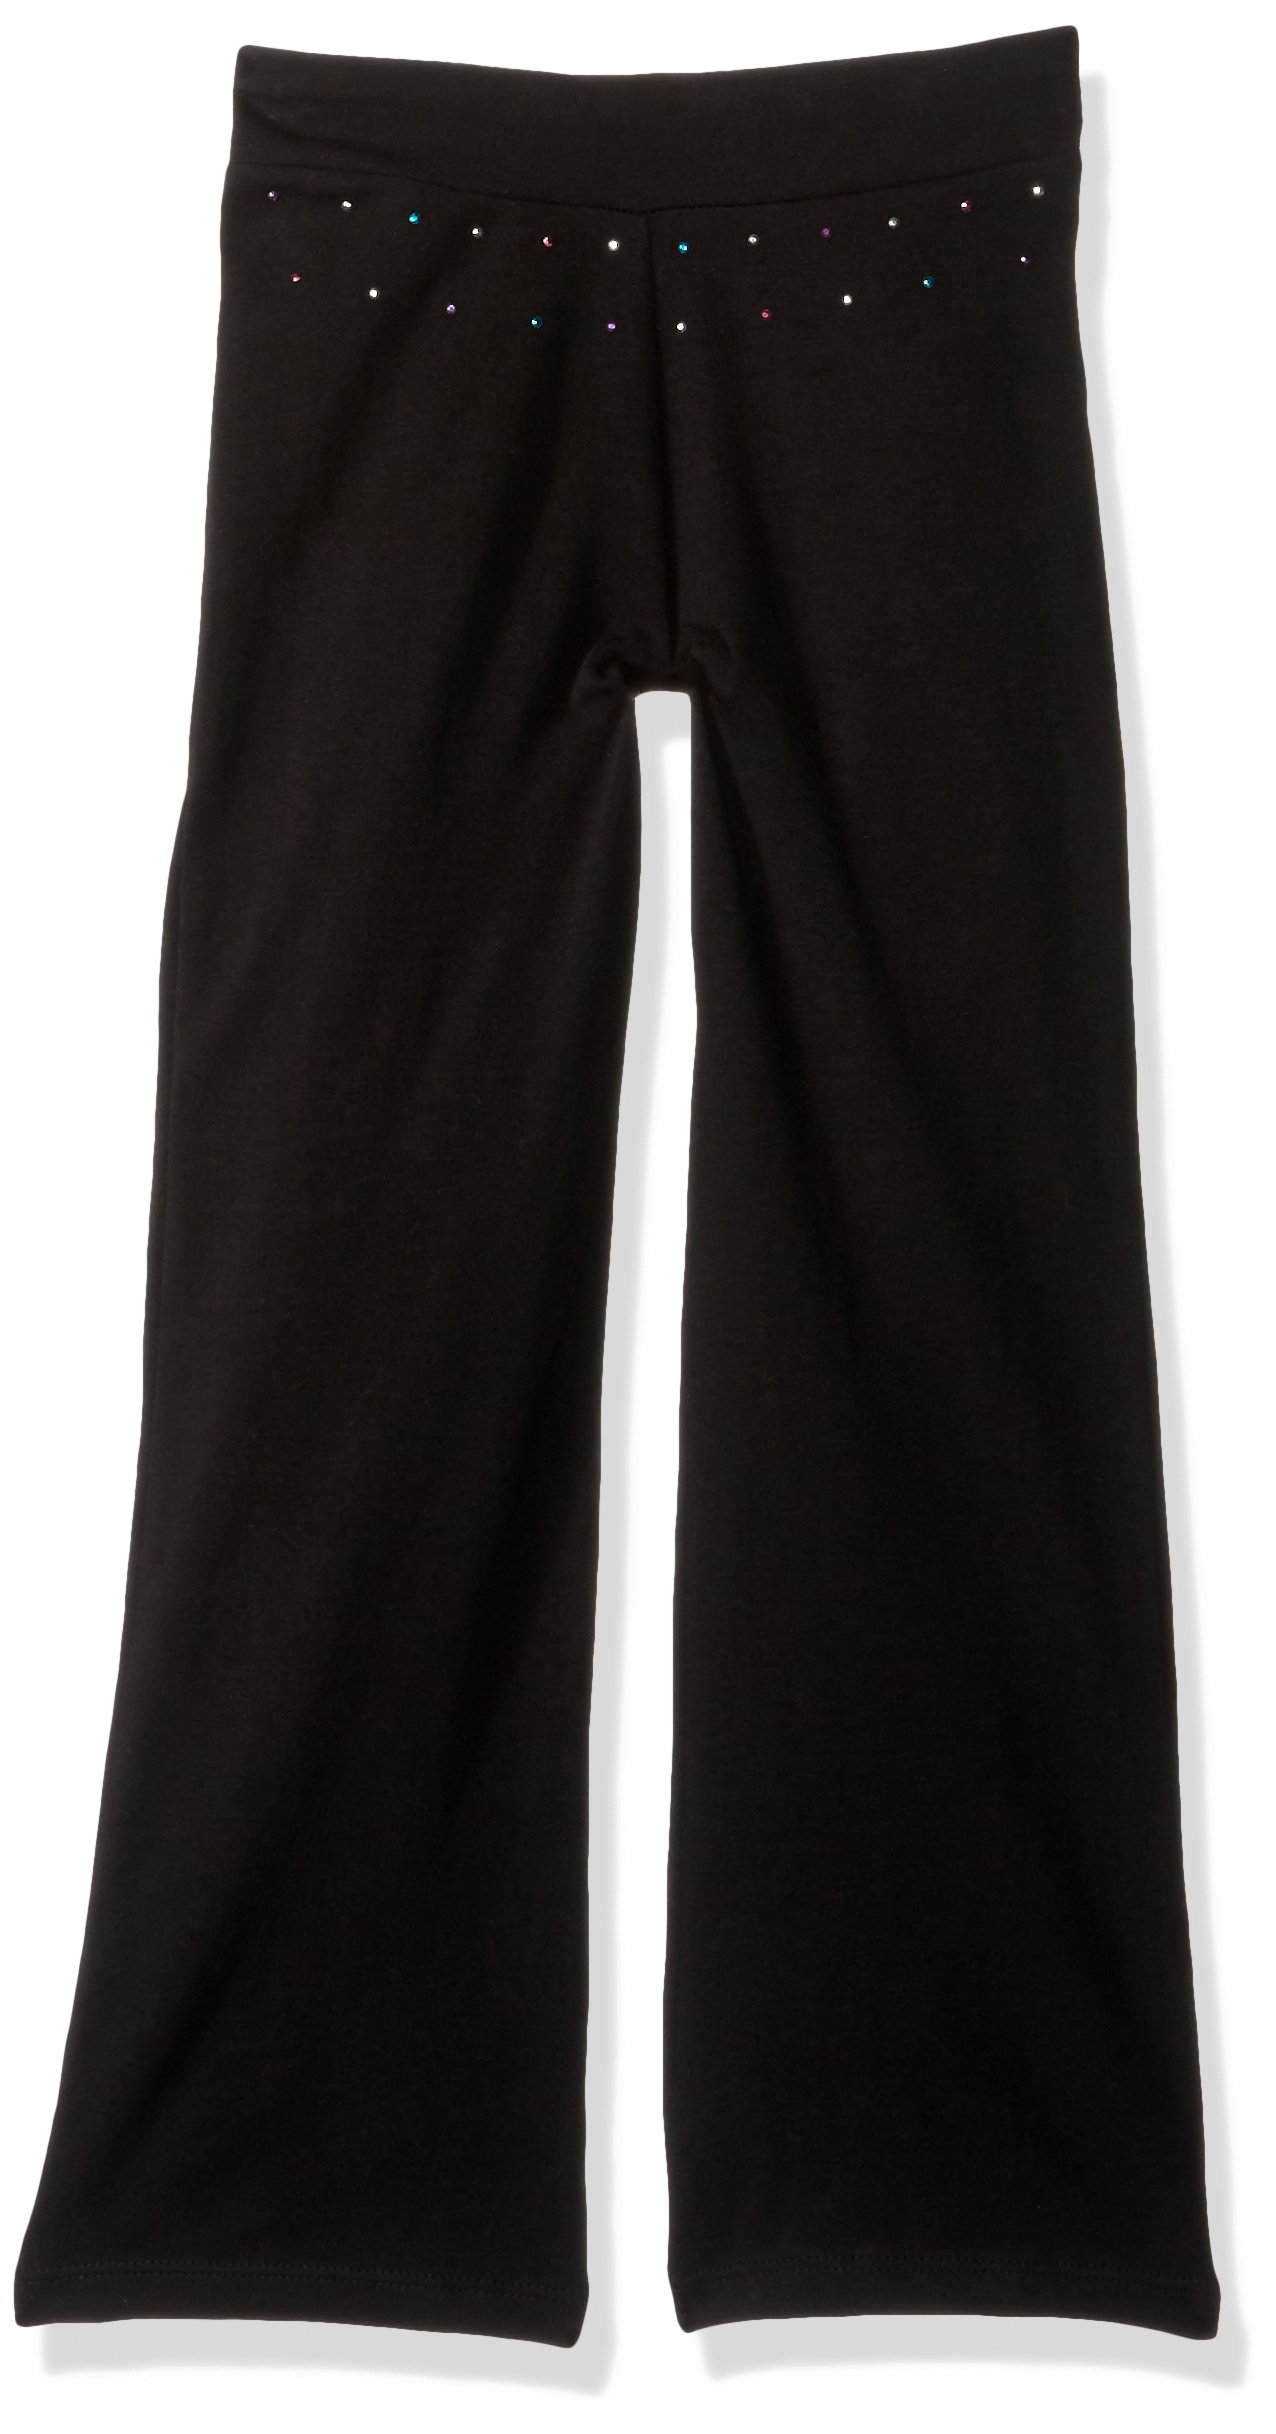 Jacques Moret Little Girls' Basic Dance Pant, Black Bootleg, Small